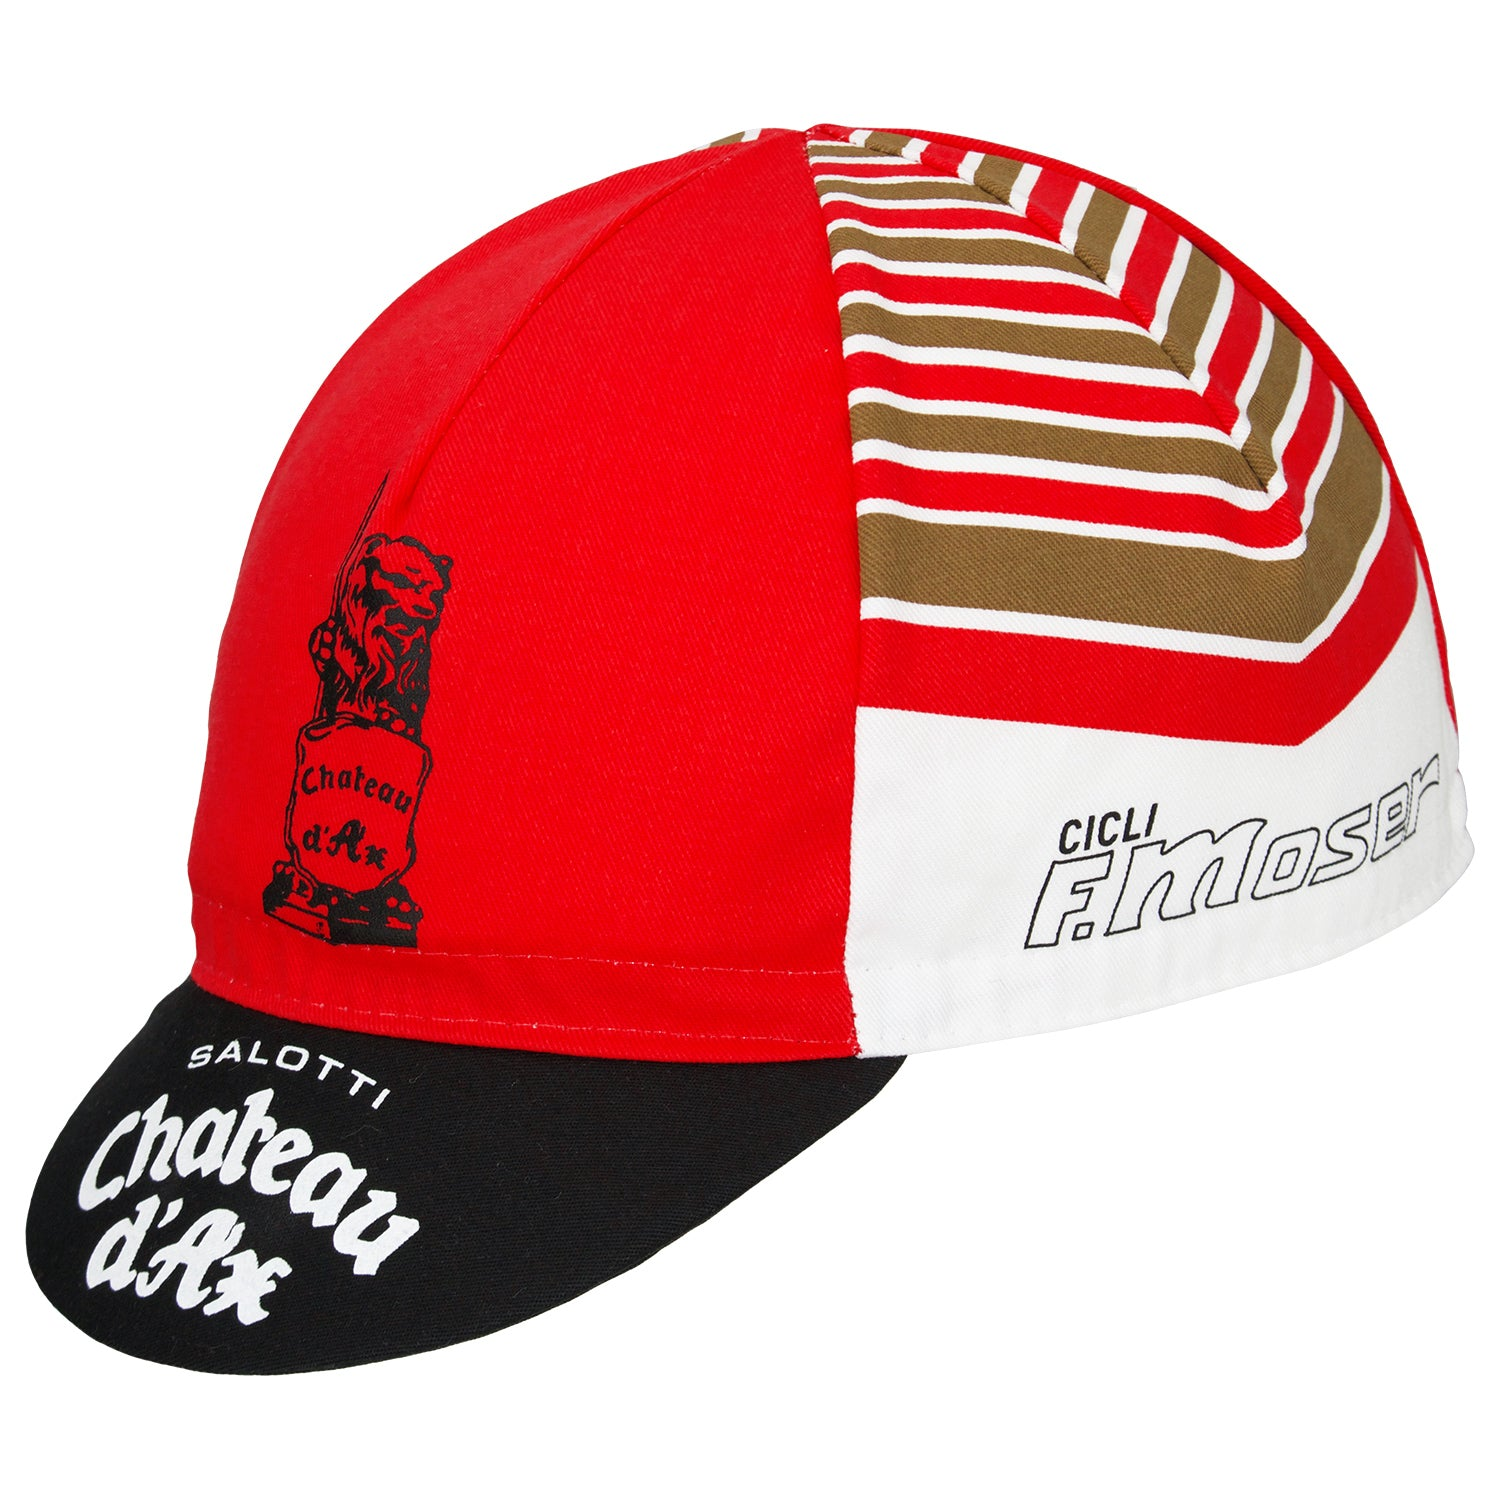 Side view of the Chateaux D'Ax Salotti F. Moser Retro Cotton Cap